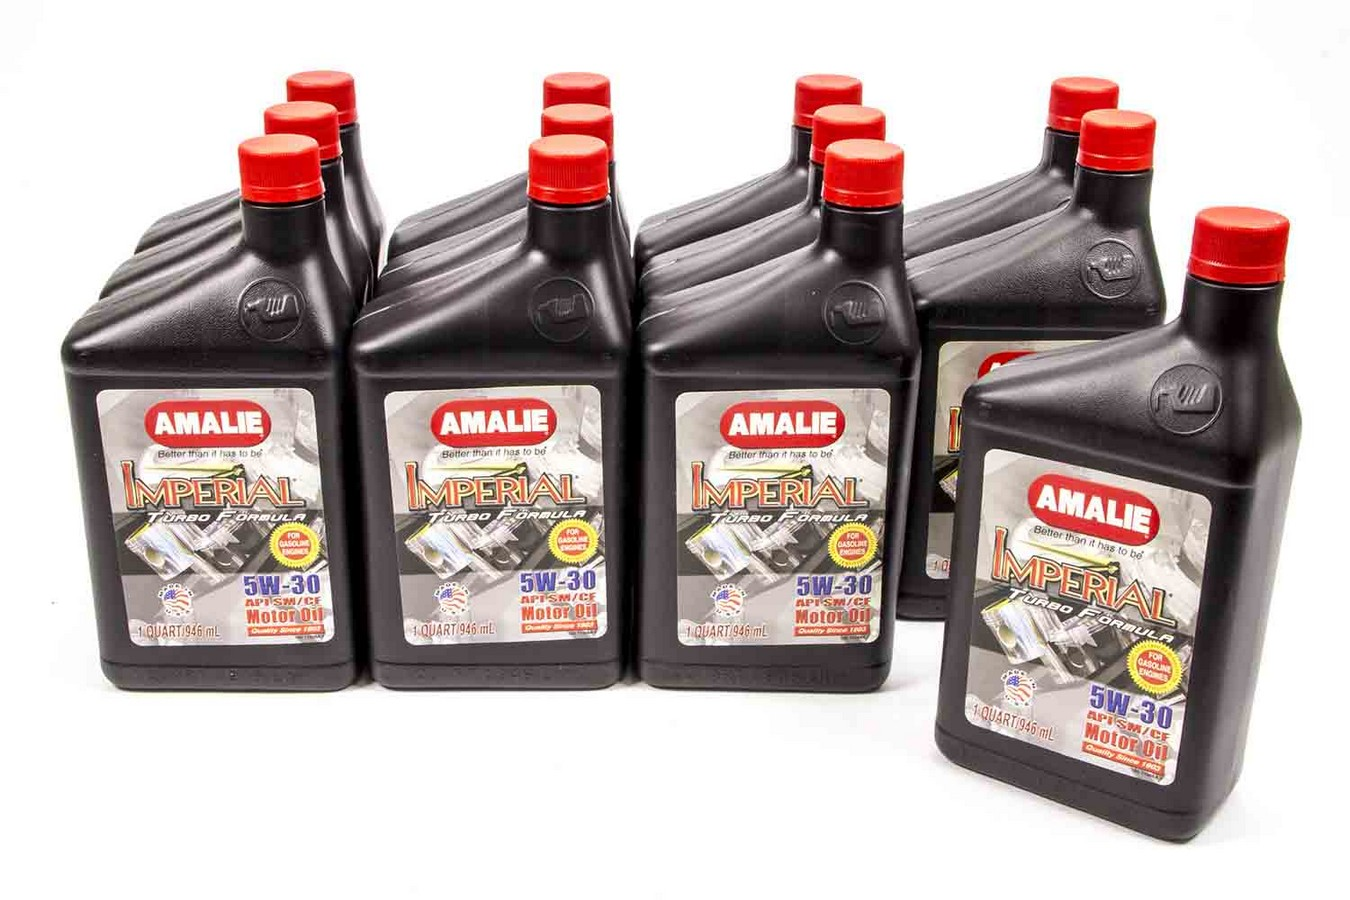 Amalie Imperial Turbo 5w30 Motor Oil 1 Qt Case Of 12 P N